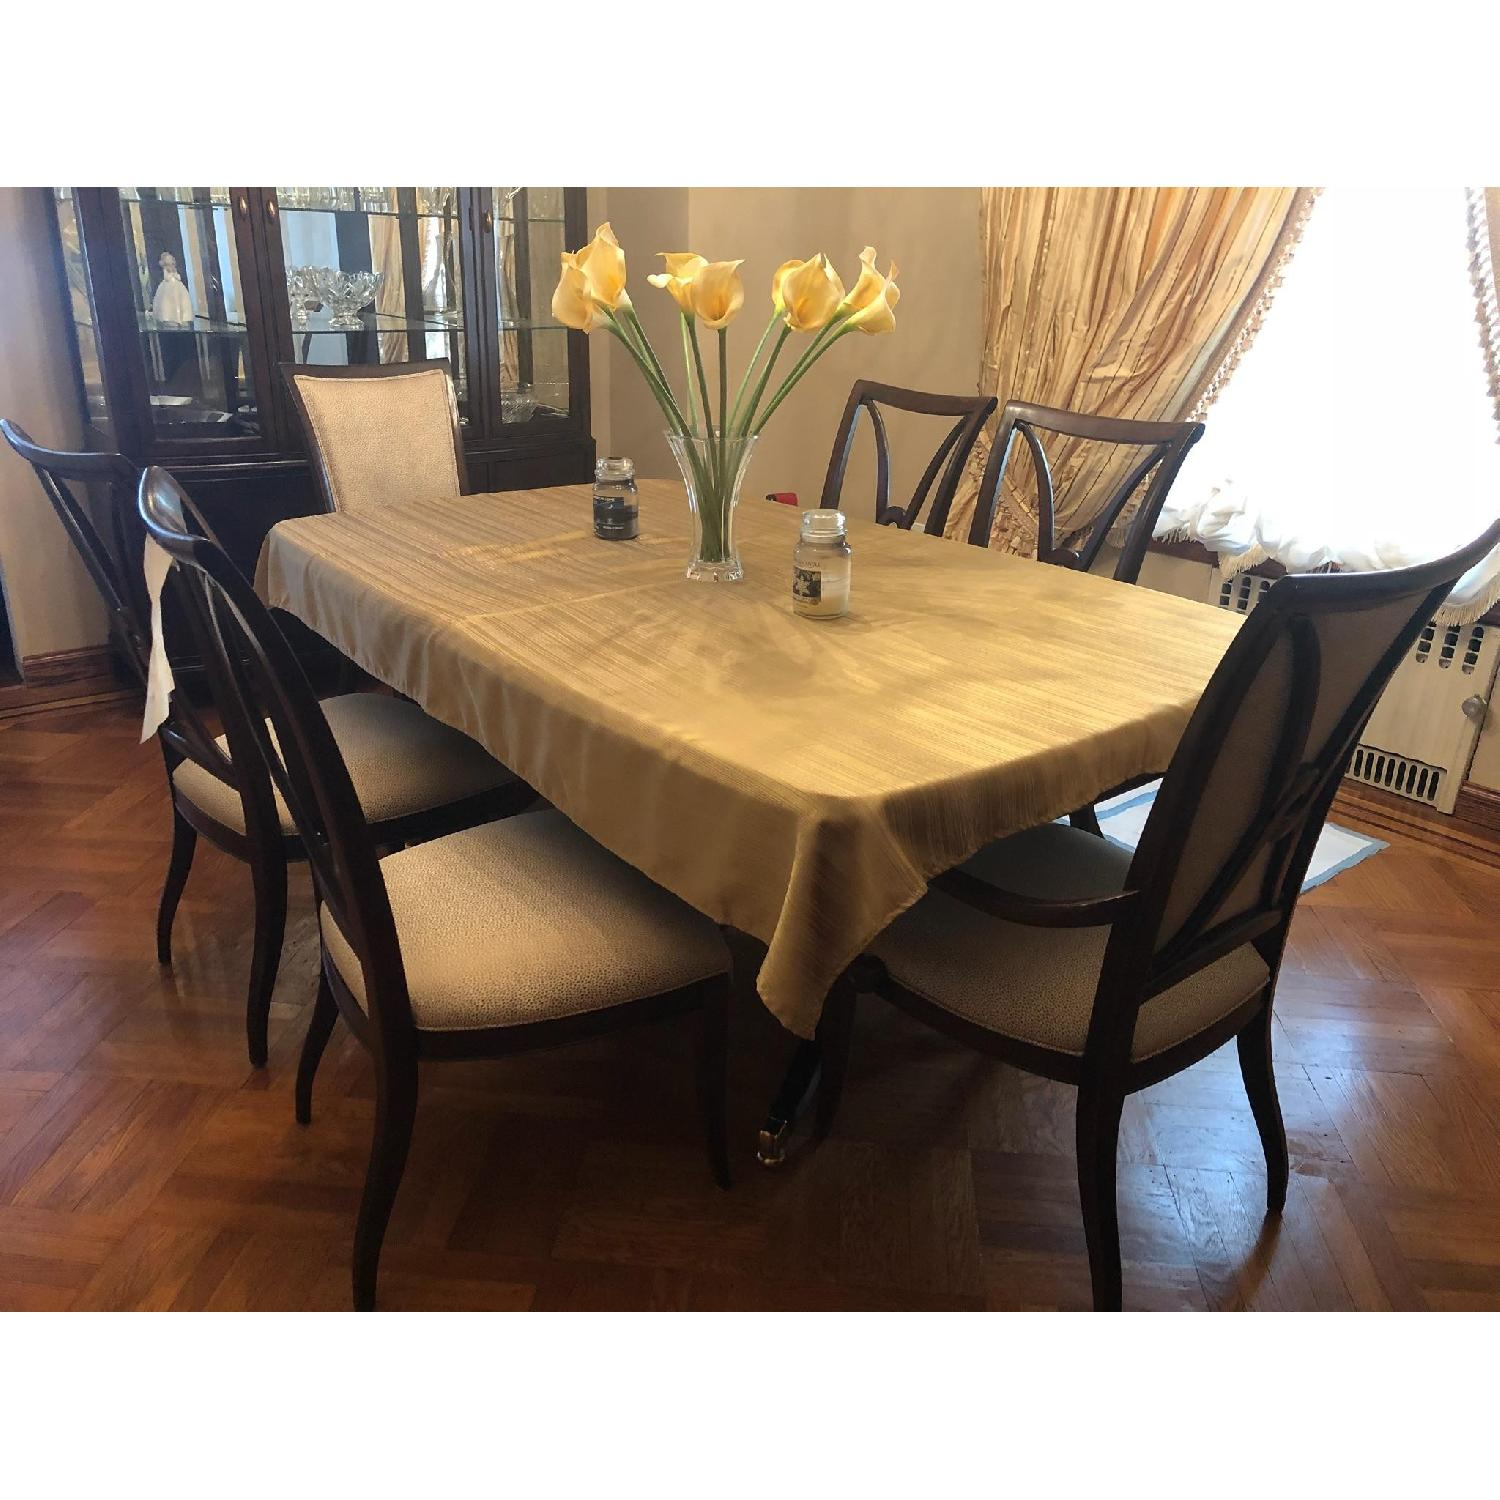 Thomasville Furniture Denver: Thomasville Solid Wood Dining Room Table W/ 6 Chairs